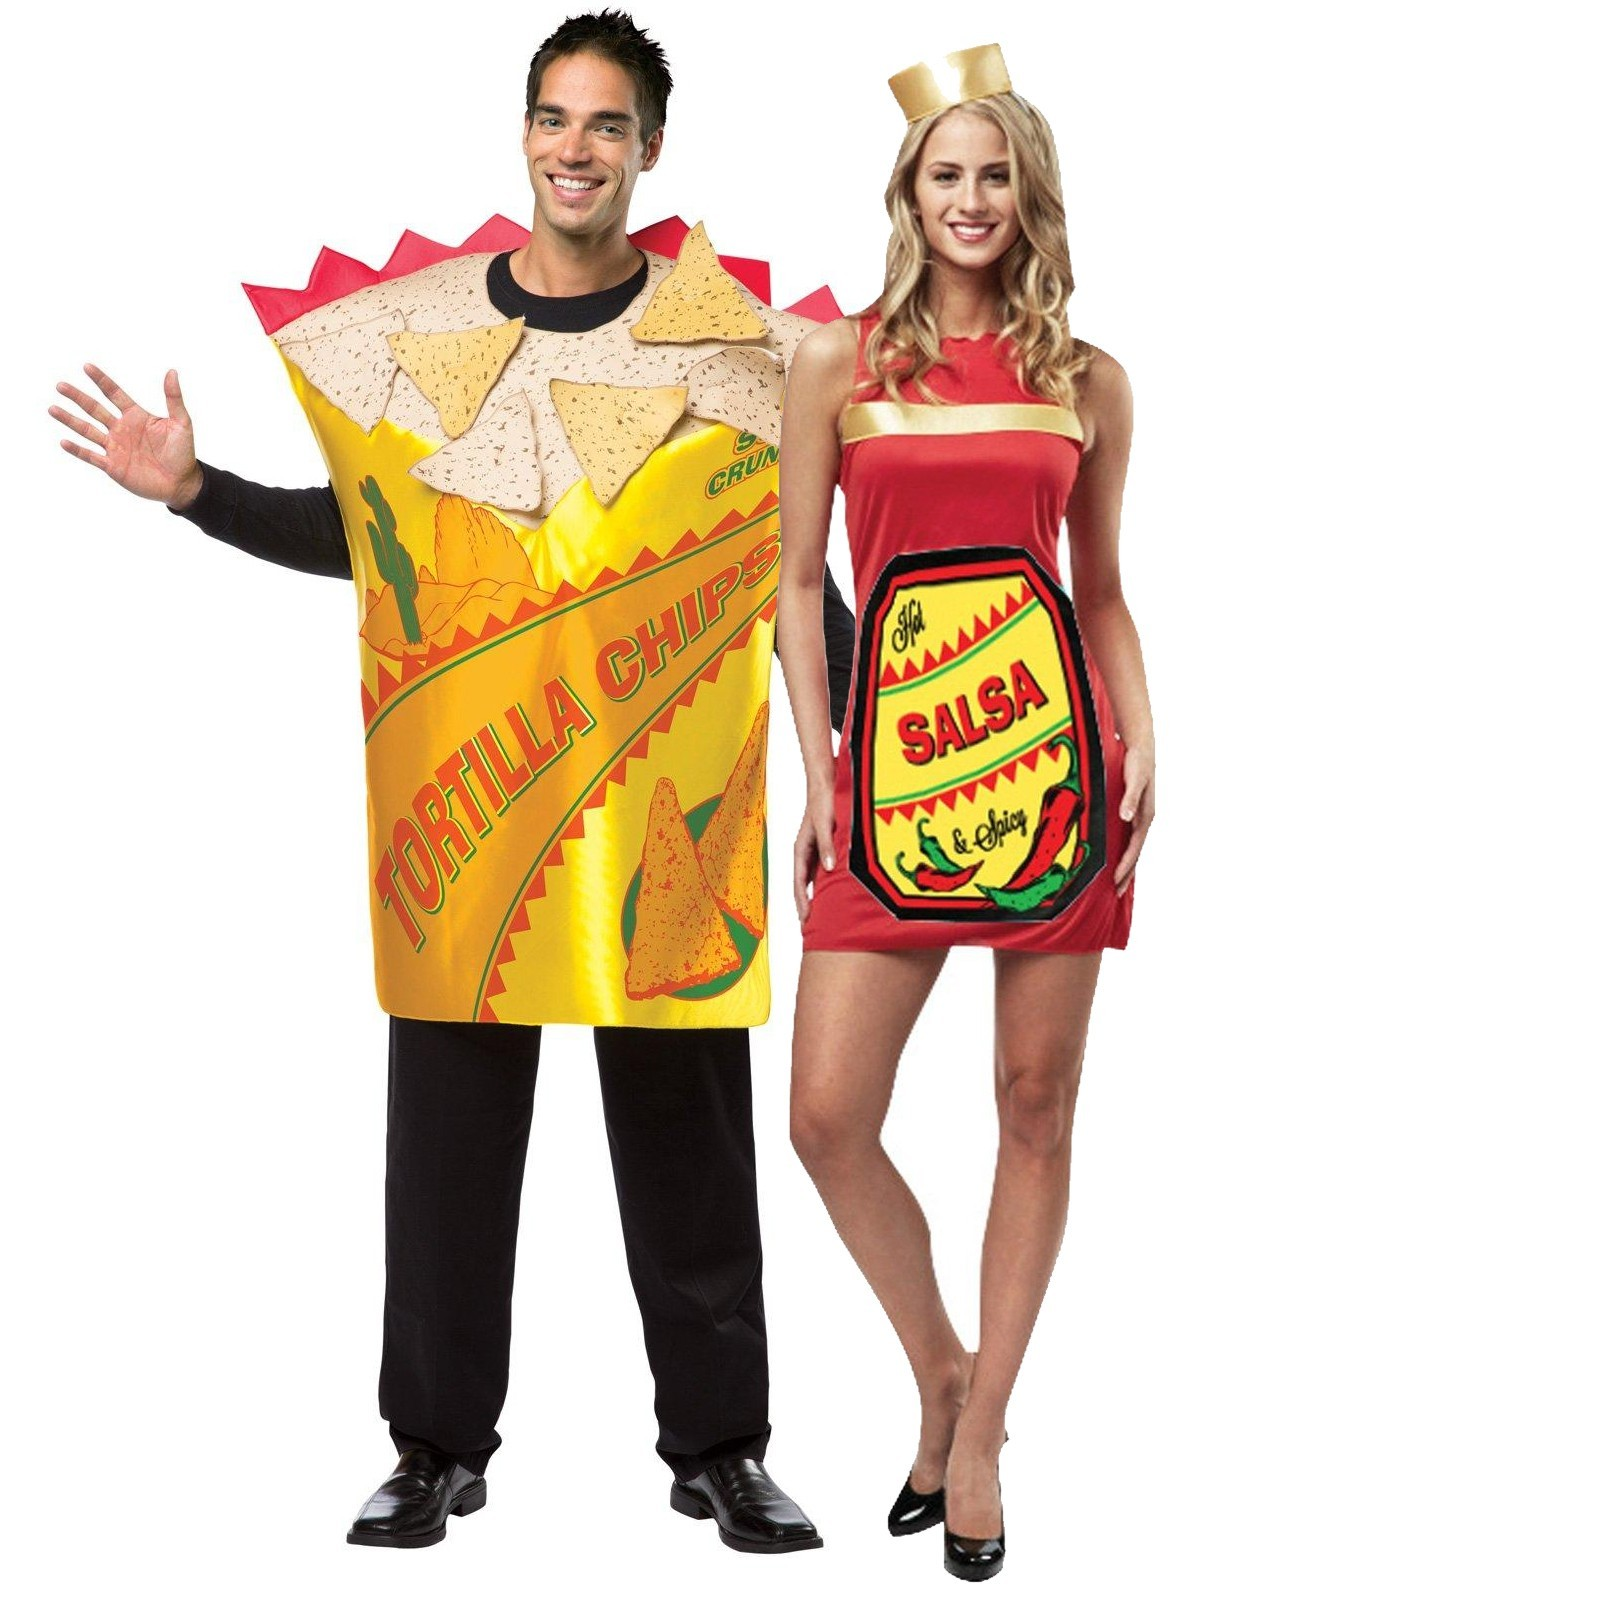 Salsa and Tortilla Chips Couples Costume  sc 1 st  Stop The Boring & Salsa and Tortilla Chips Couples Costume | Stop The Boring